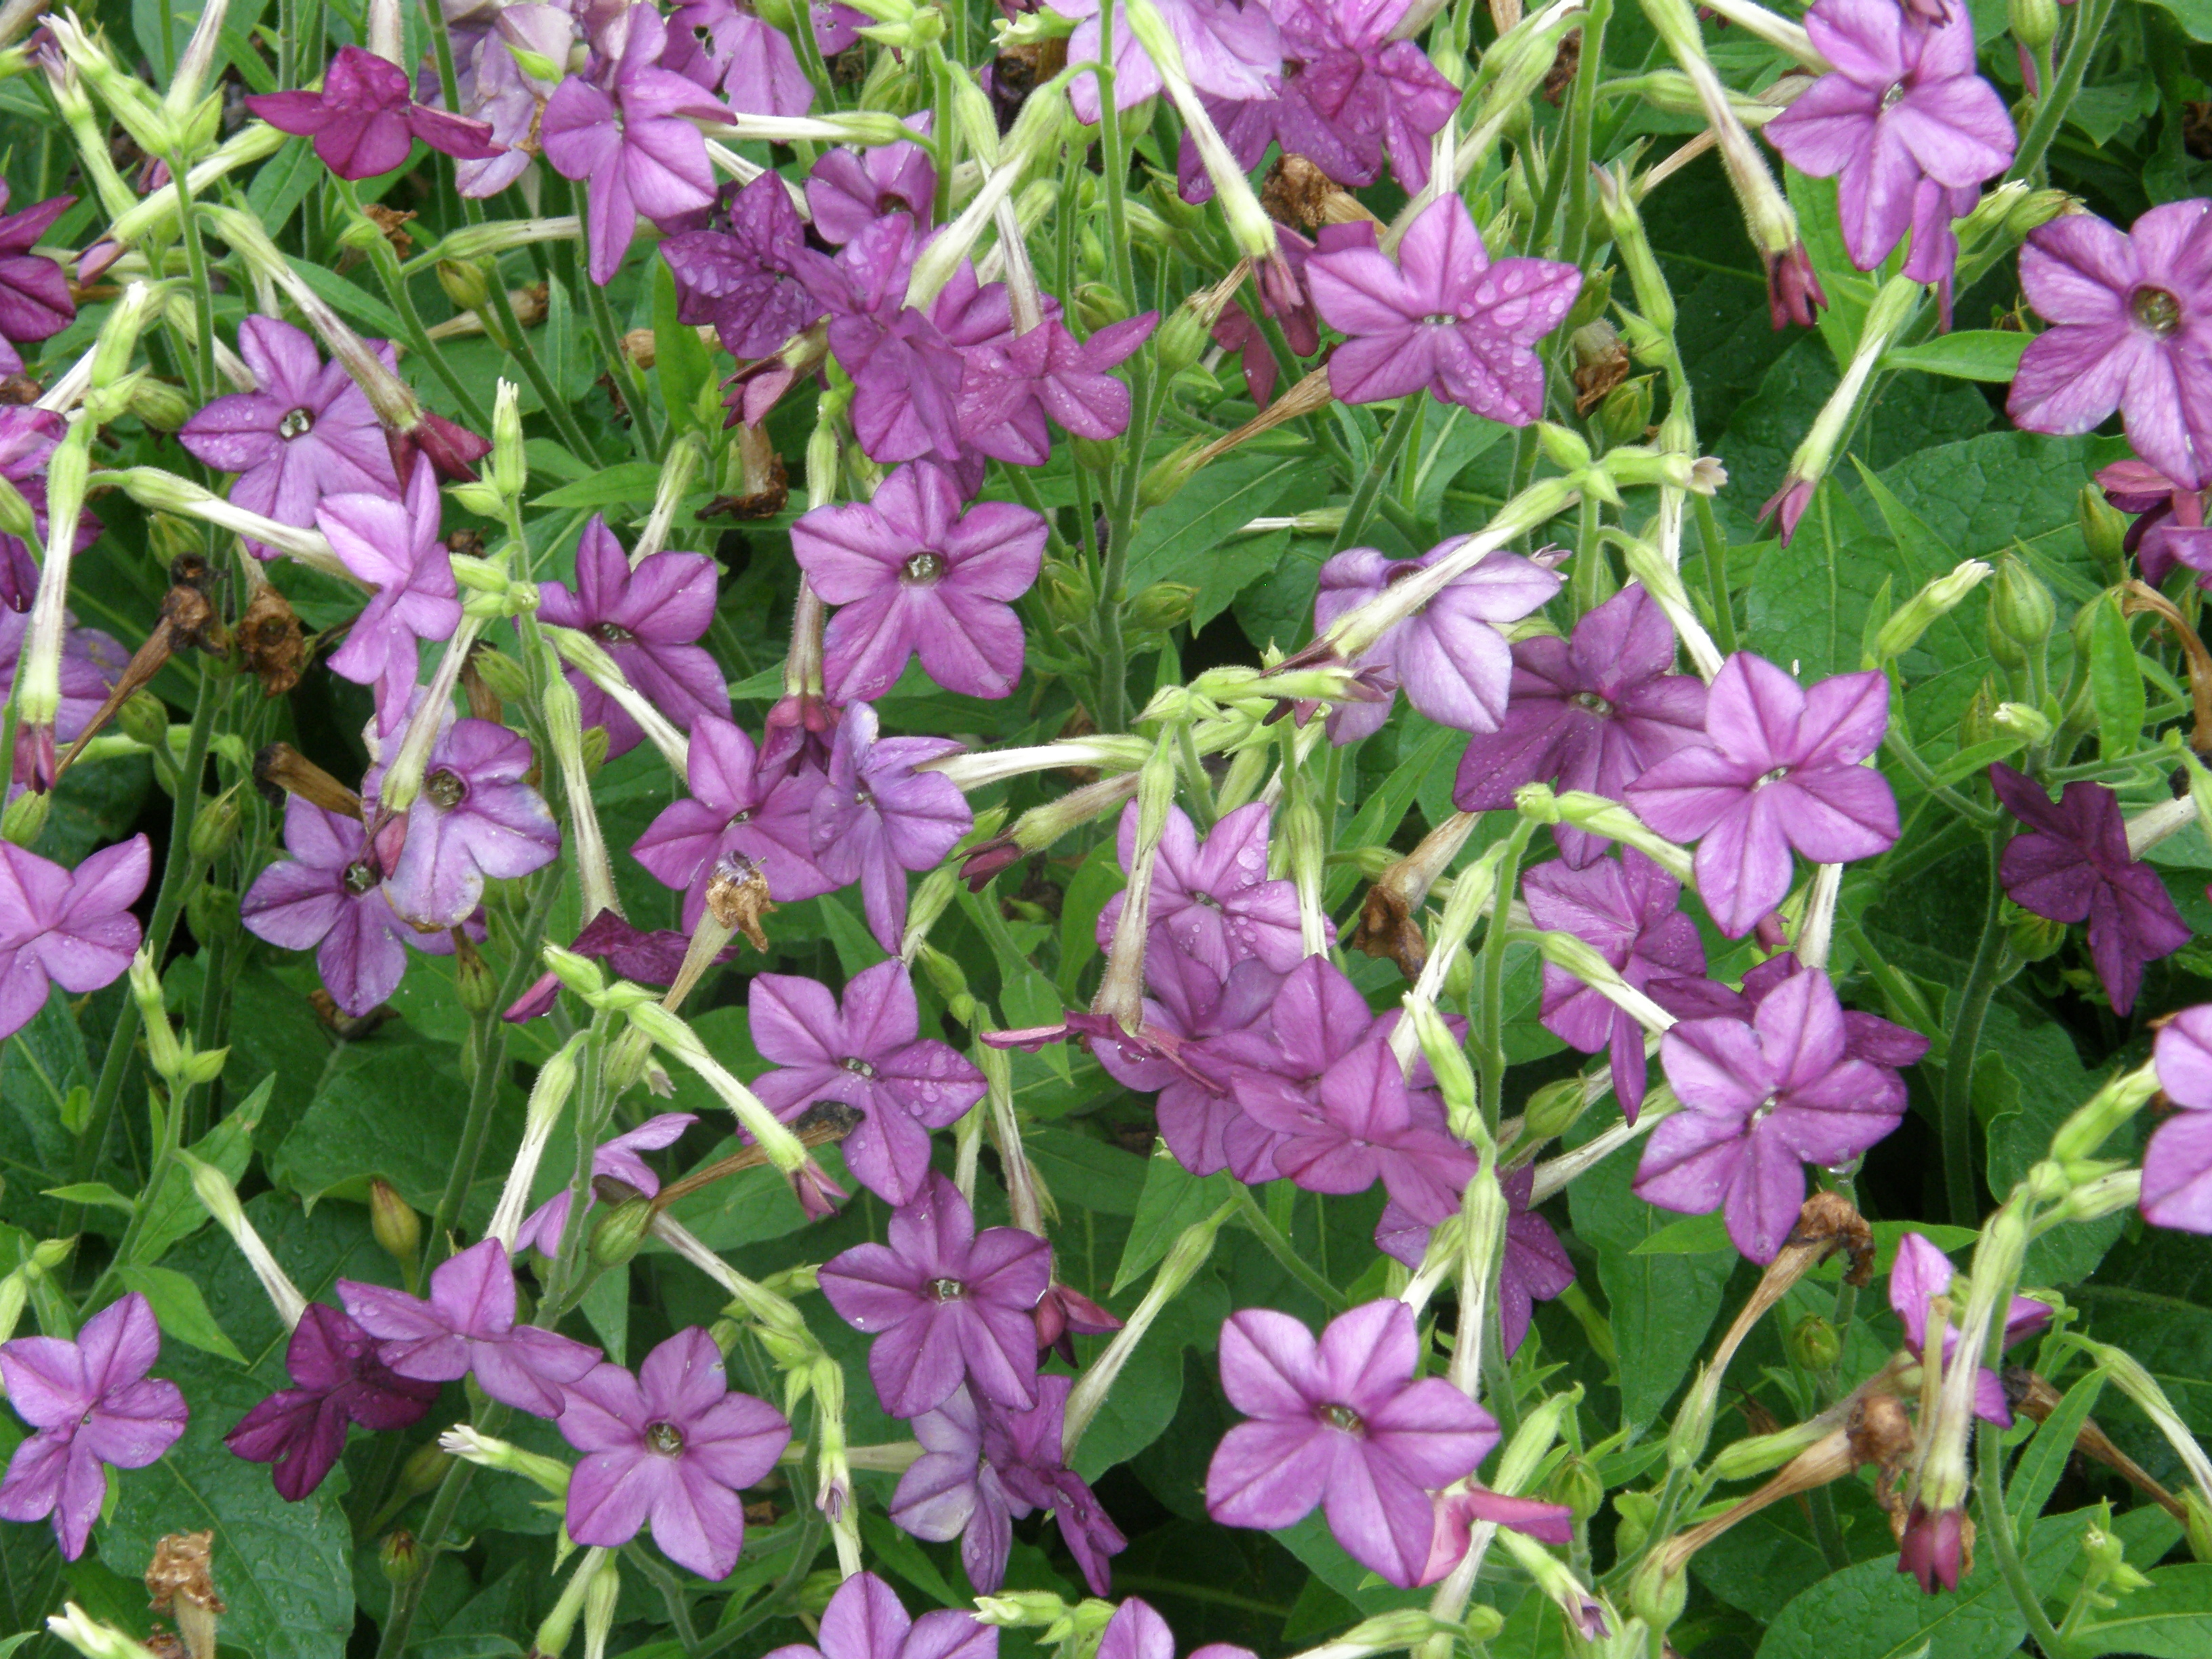 Nicotiana – Plant of the Week for Dec. 14. 2015